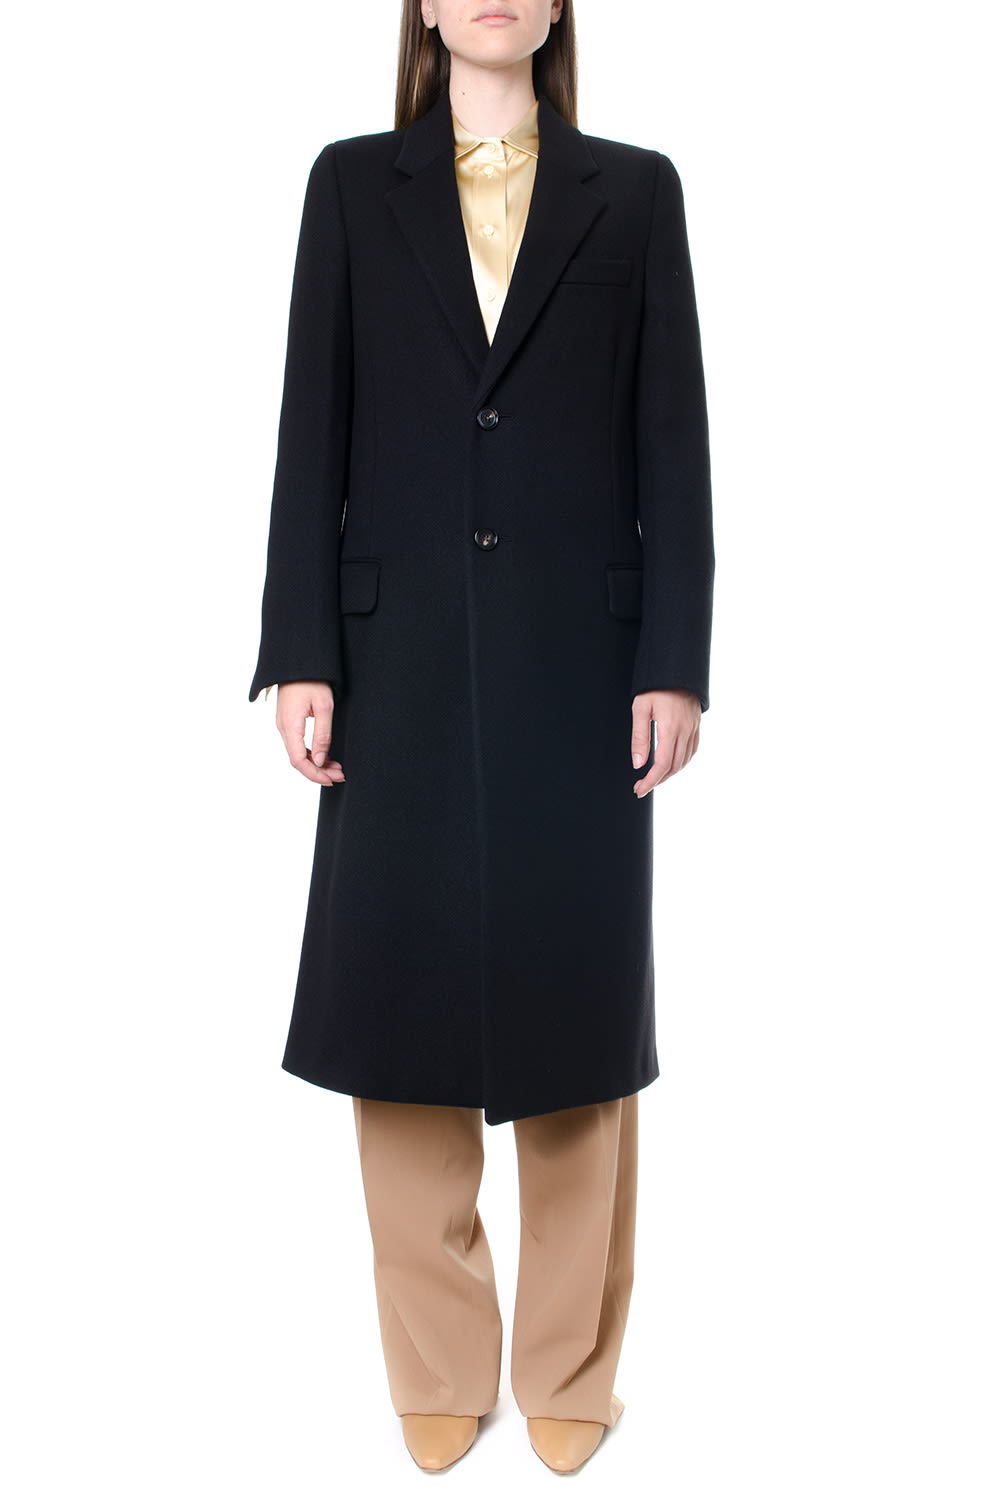 Bottega Veneta Black Wool Single Breasted Coat